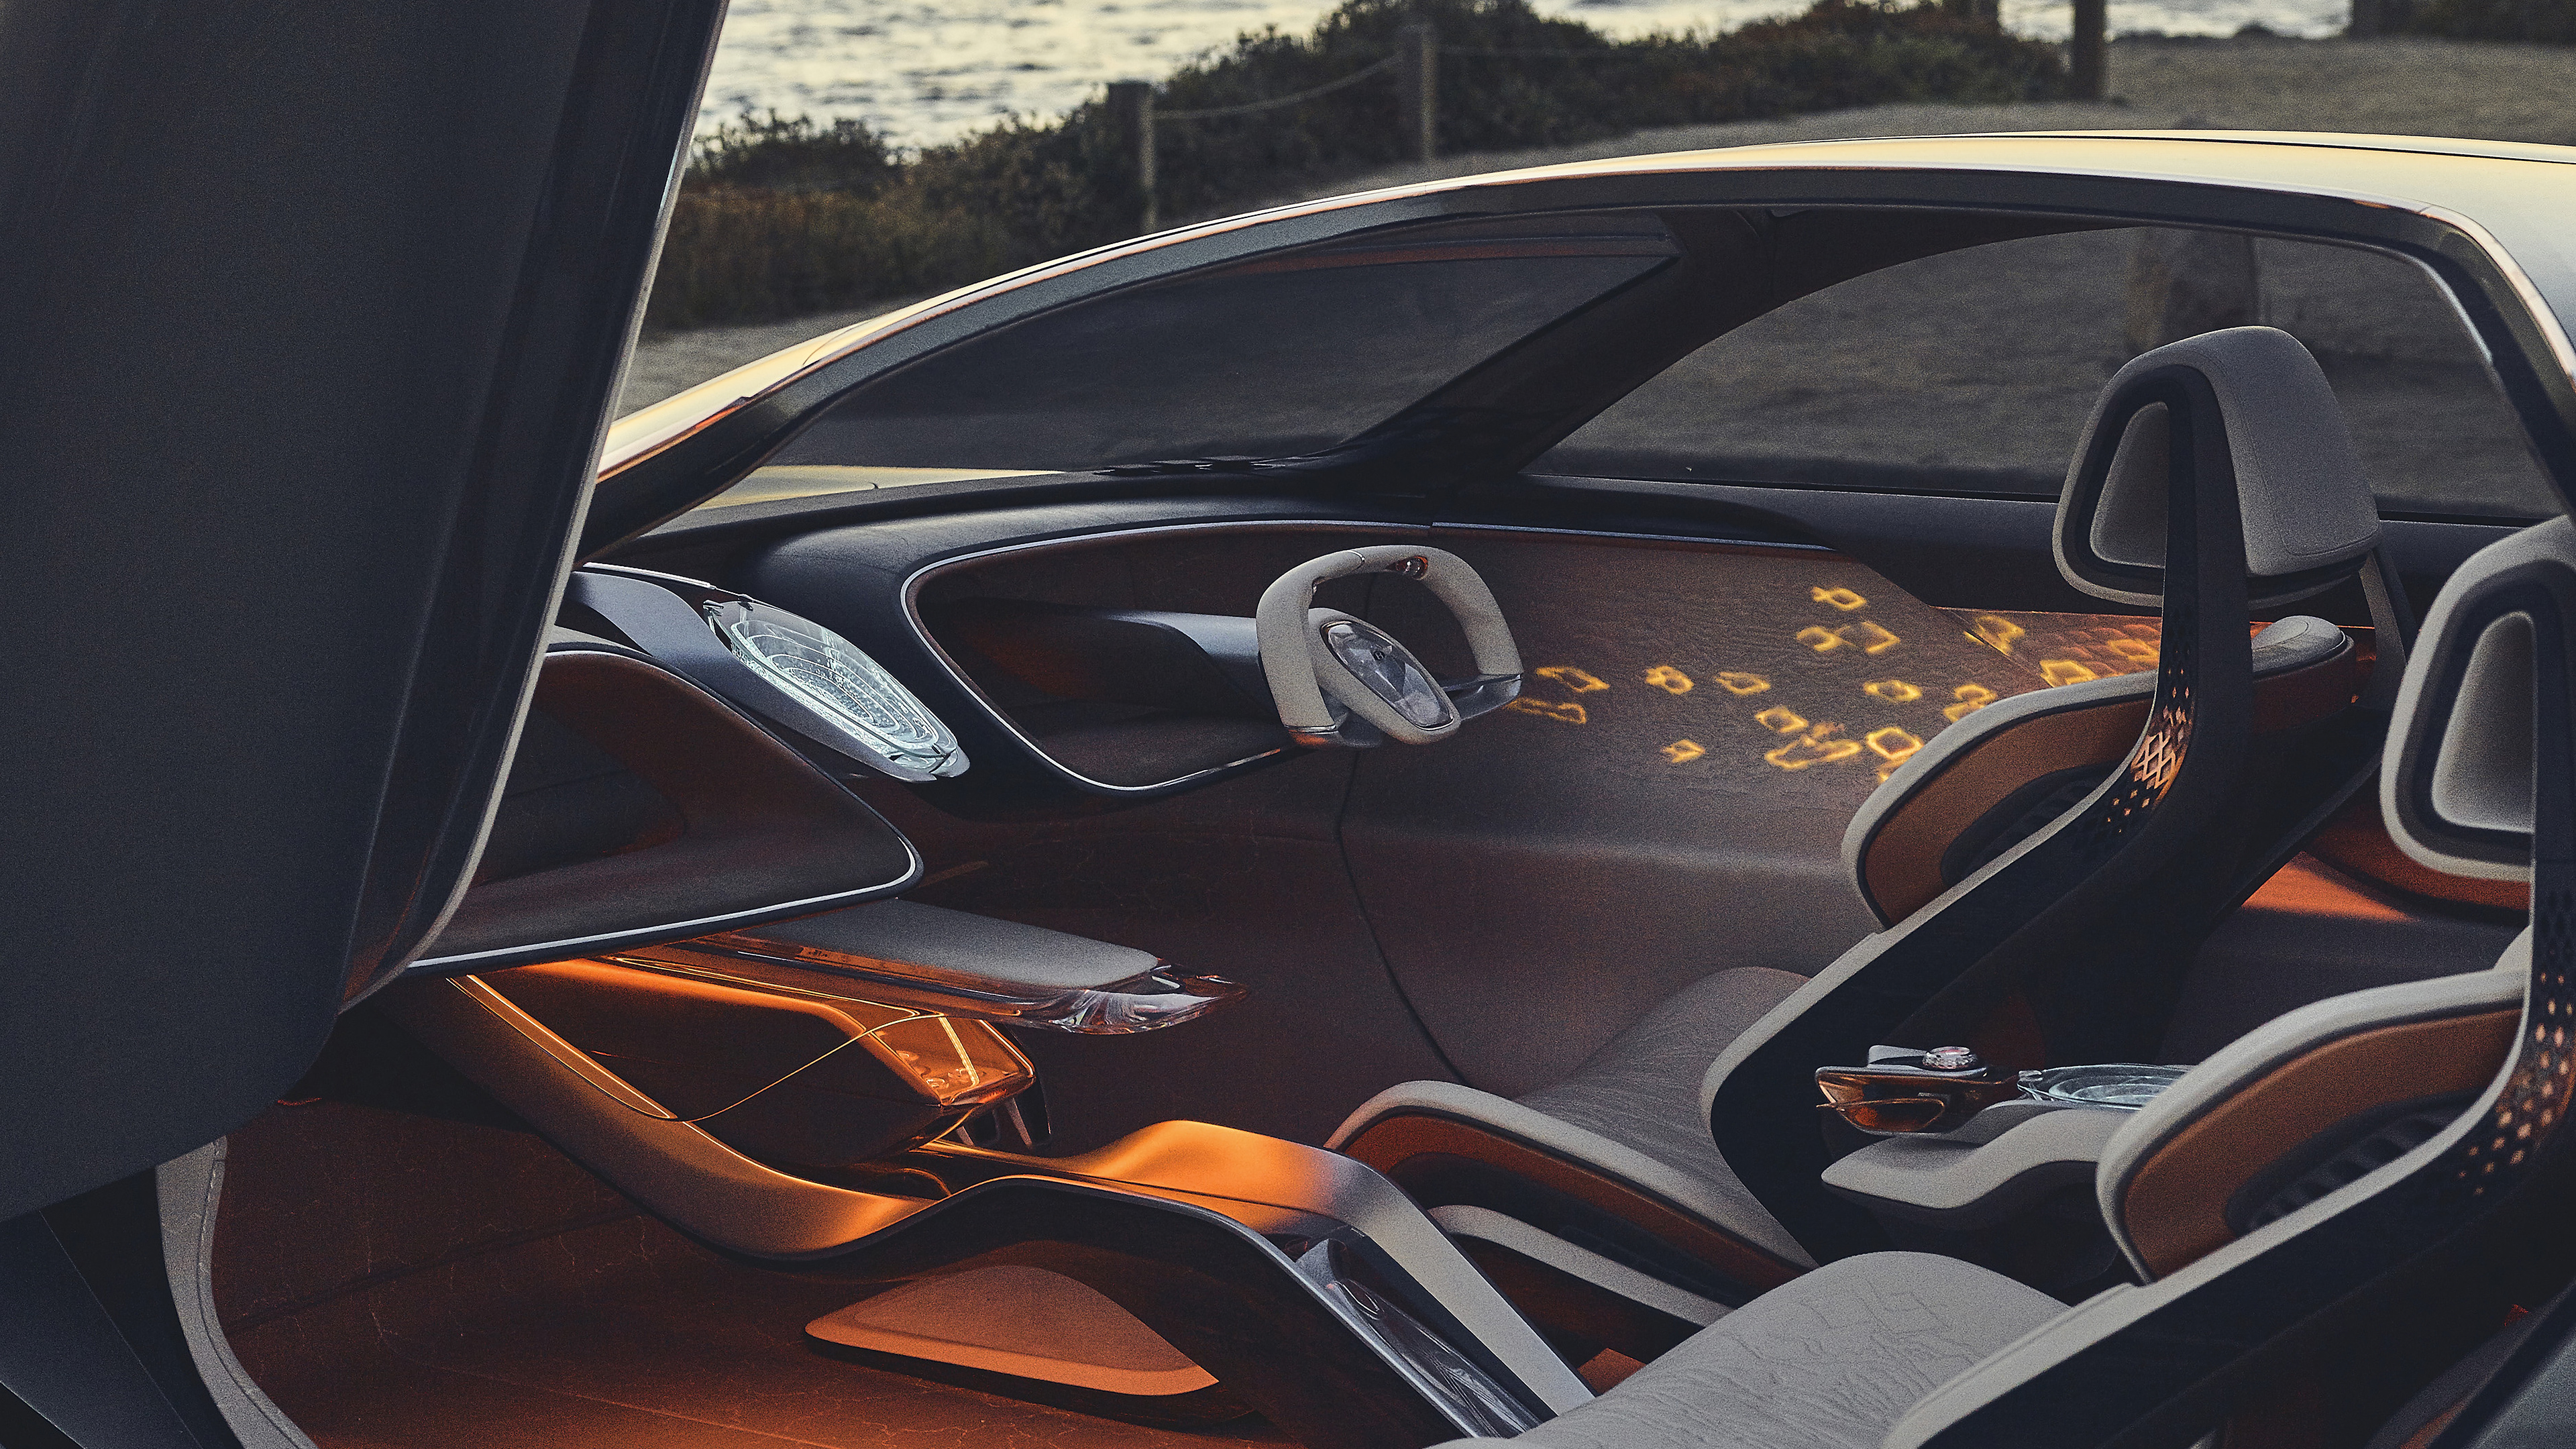 bentley exp 100 gt 2019 interior 1569189342 - Bentley EXP 100 GT 2019 Interior - hd-wallpapers, cars wallpapers, bentley wallpapers, bentley exp 100 gt wallpapers, 4k-wallpapers, 2019 cars wallpapers